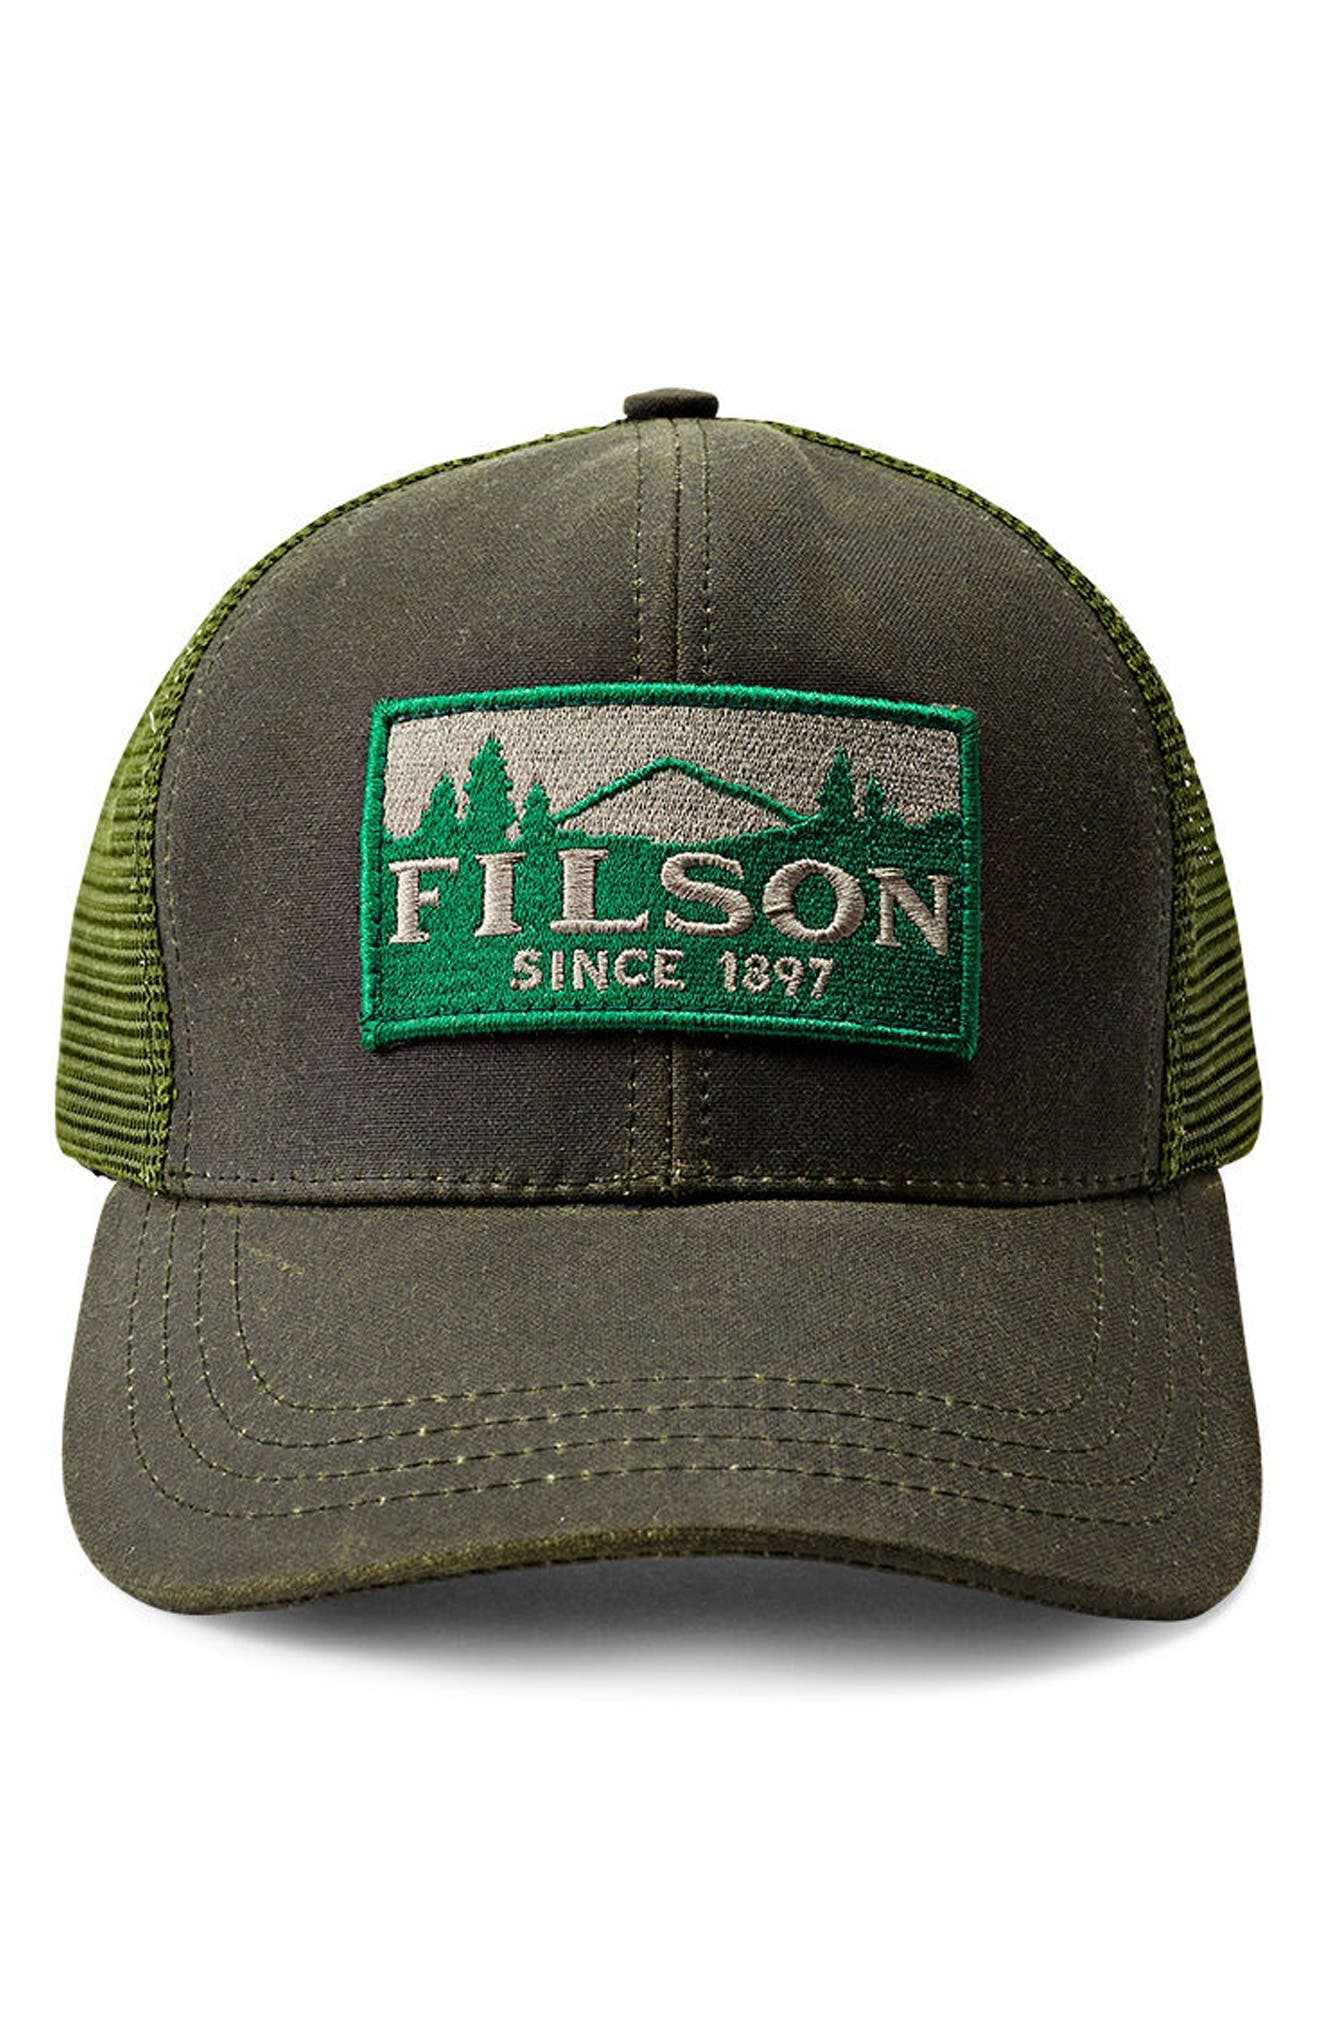 Logger Trucker Hat,                         Main,                         color, Otter Green